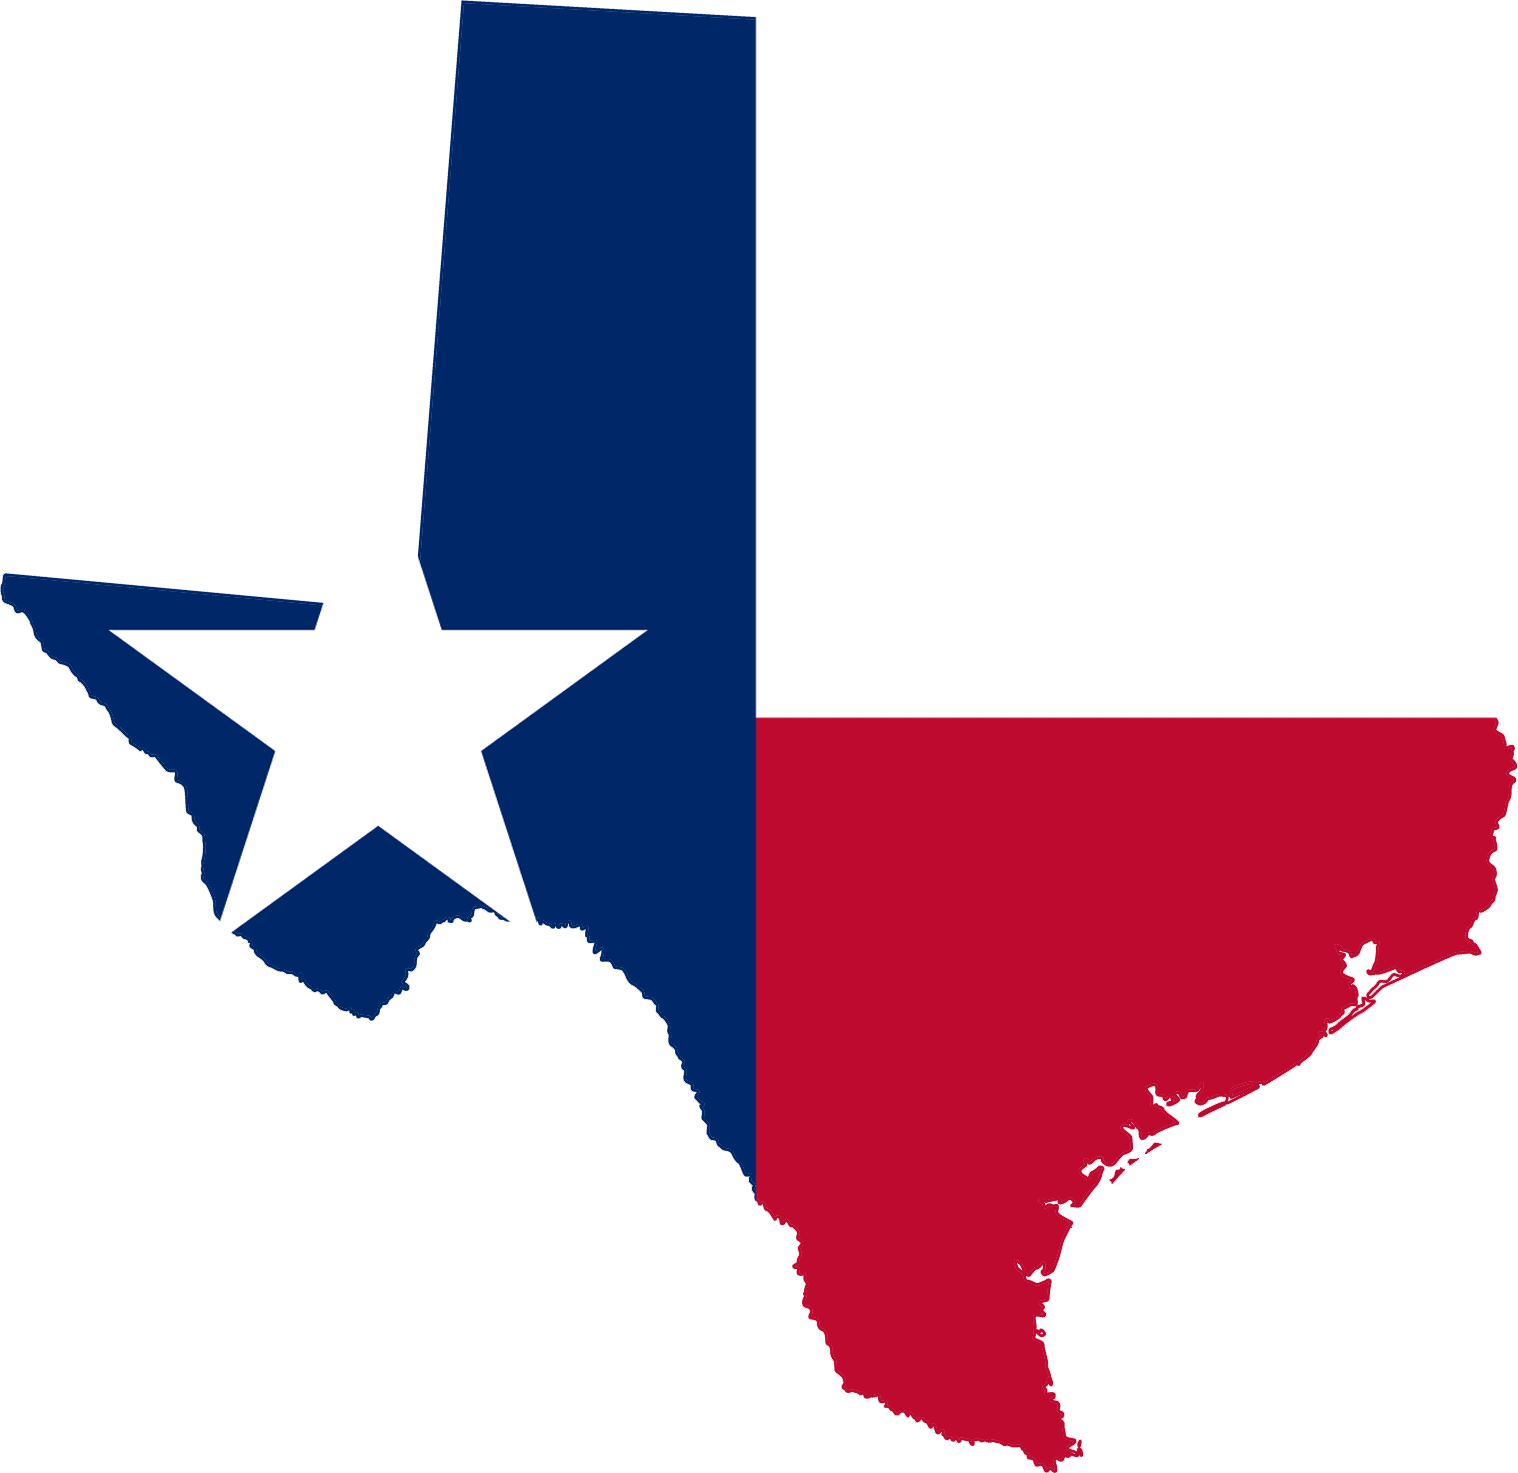 Clipart of Texas Flag free image.